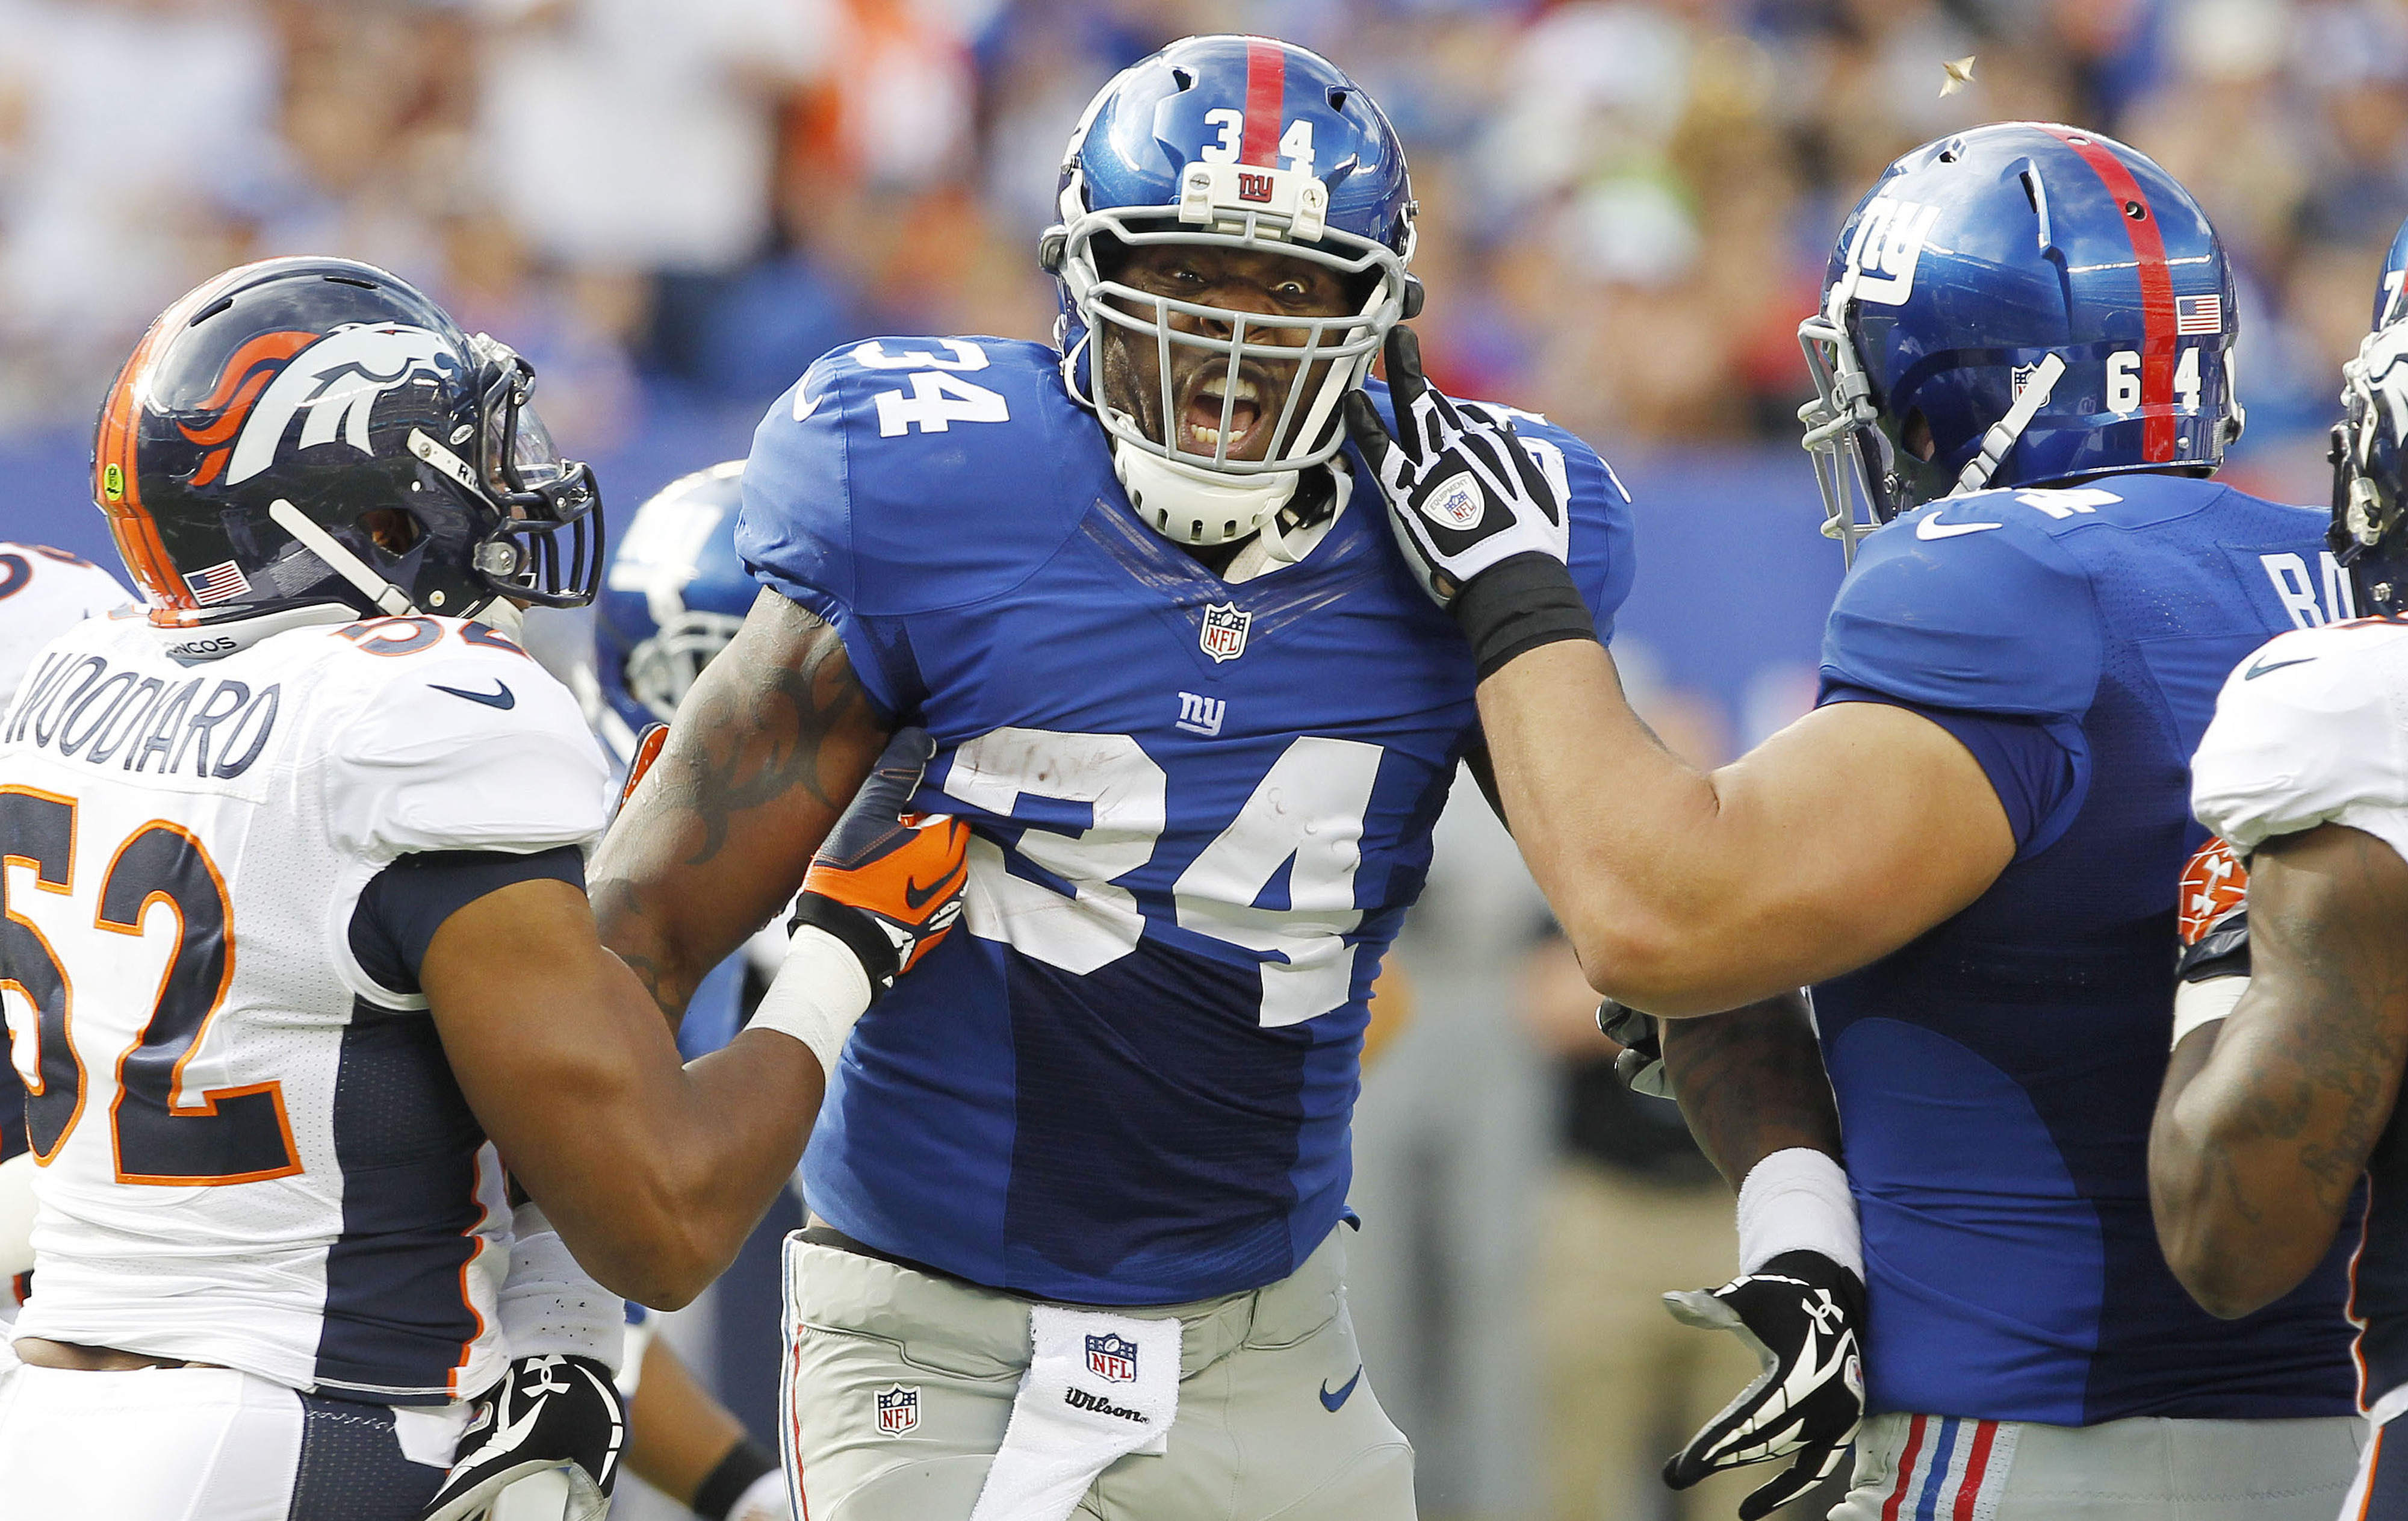 Brandon Jacobs played 14 snaps on offense Sunday.